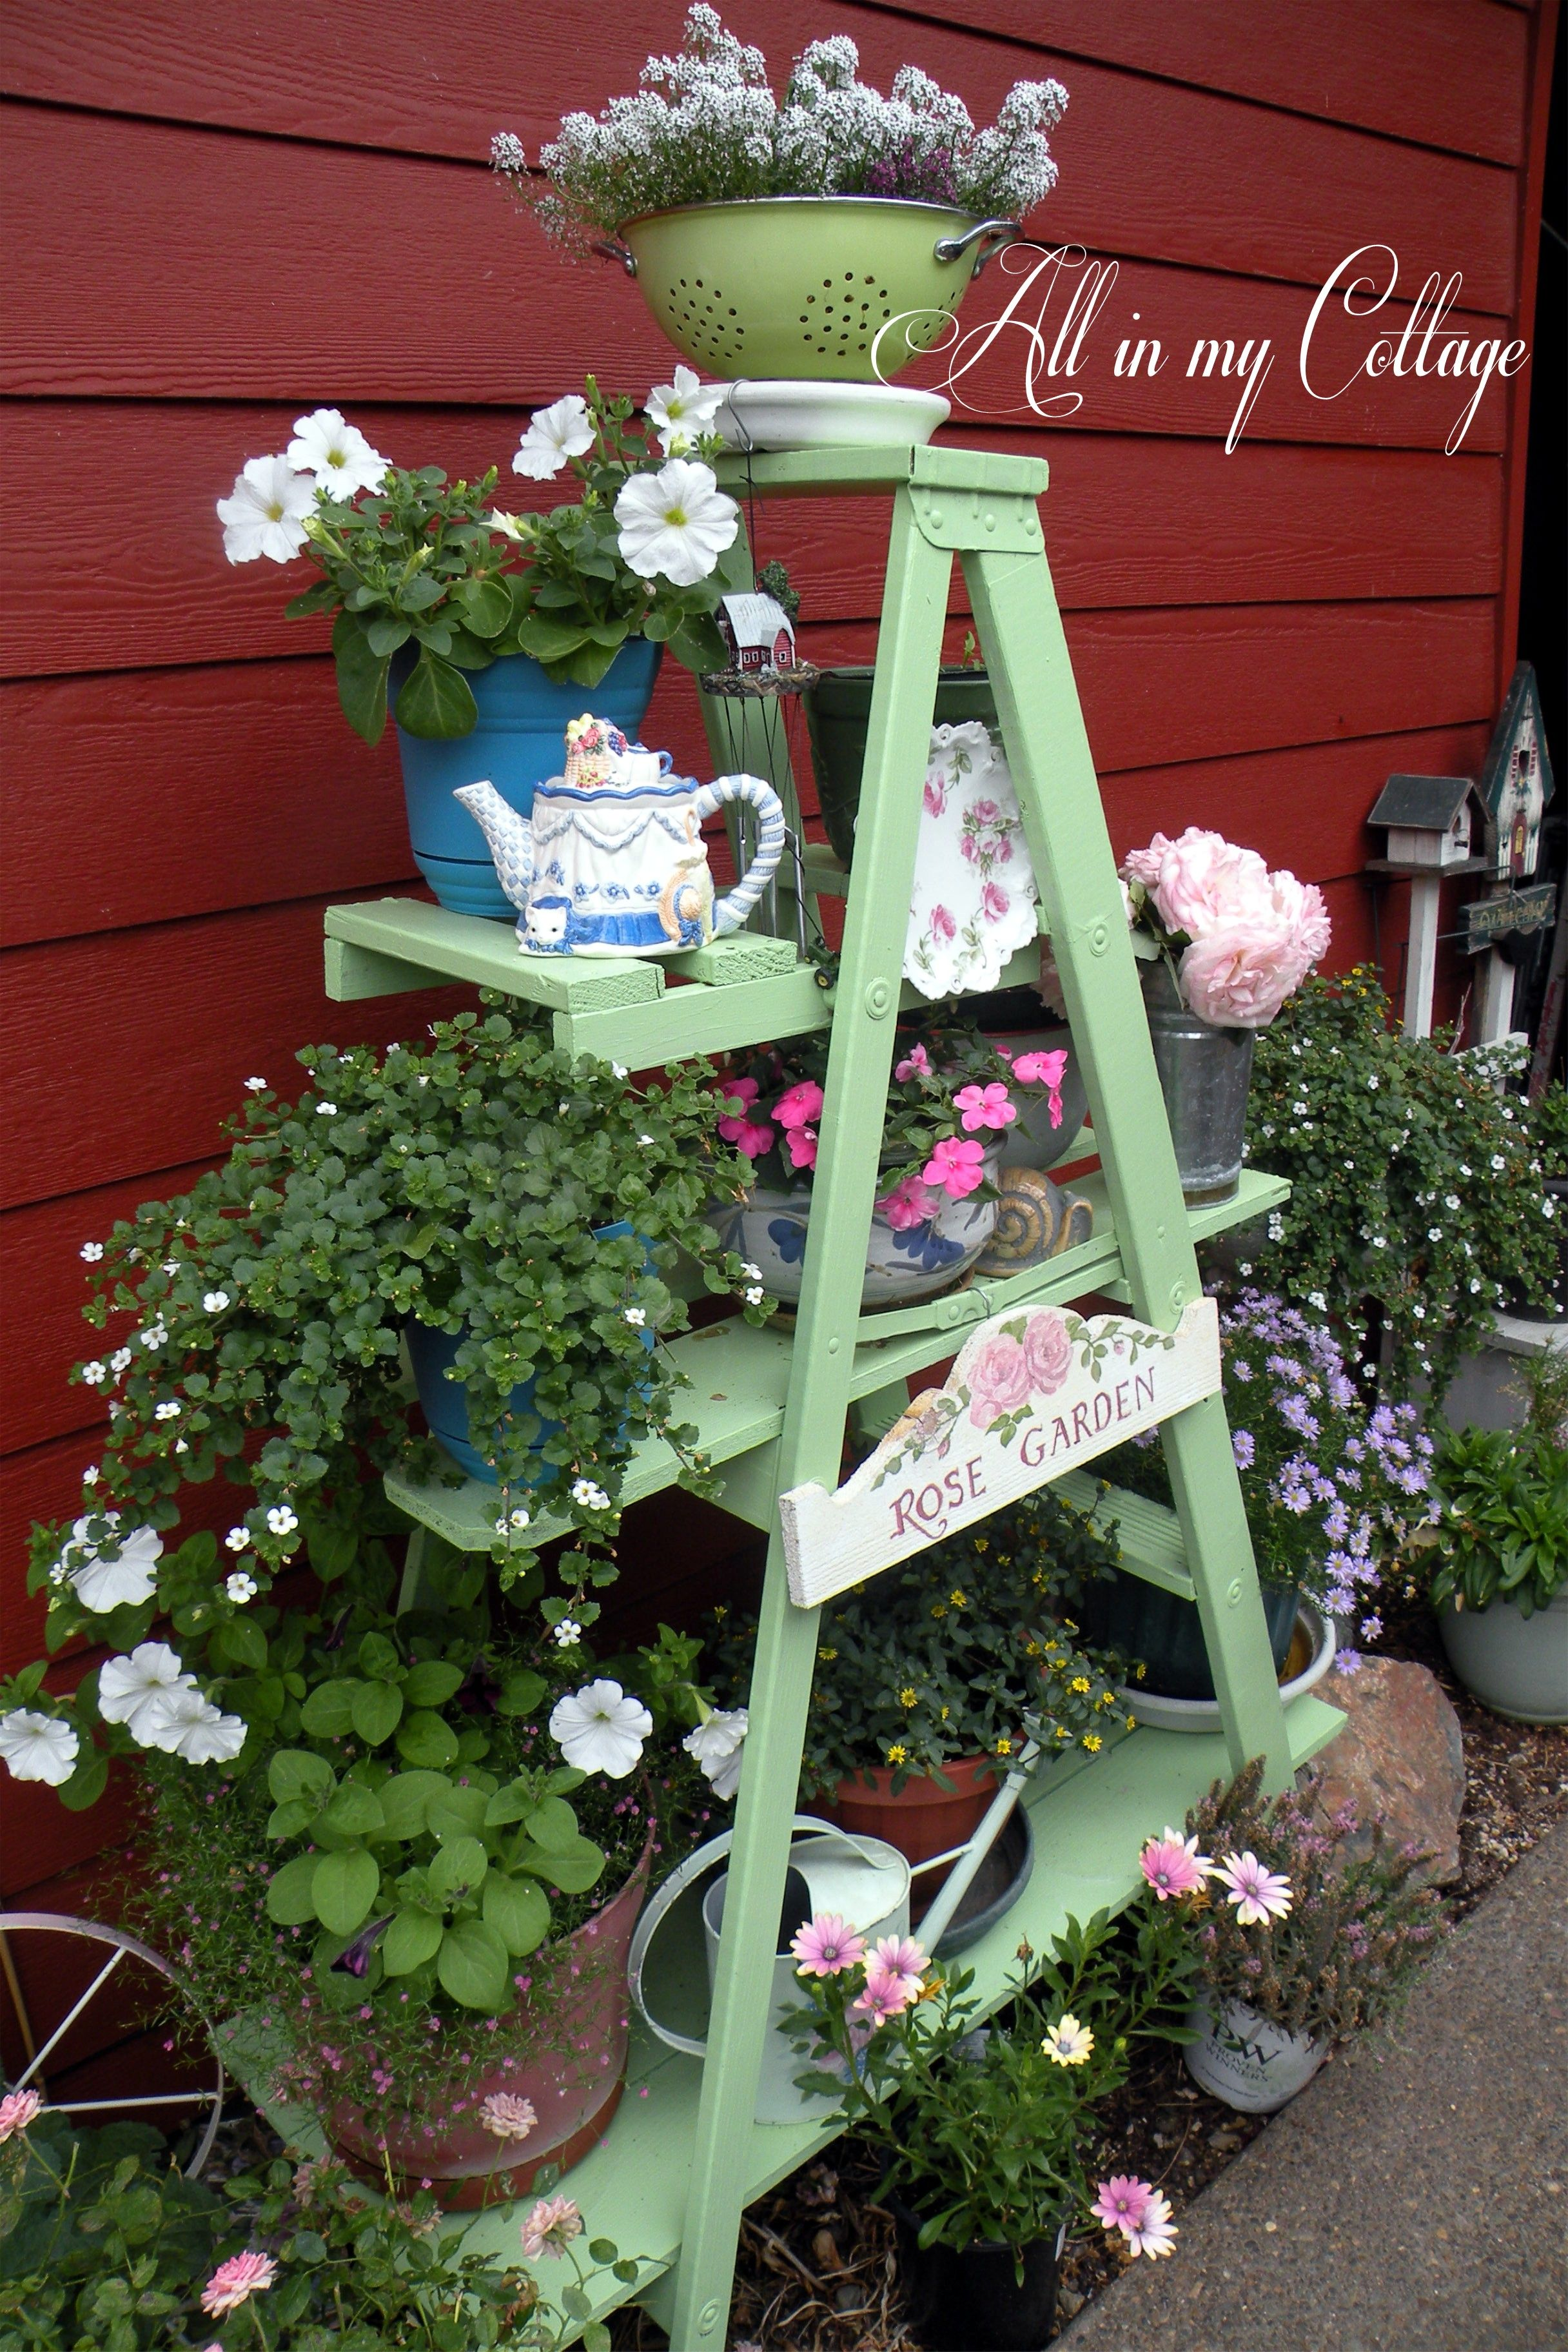 Gartengestaltung Obi Re Purposed Ladder Garden Obi Diy Ideen Für Heim Garten